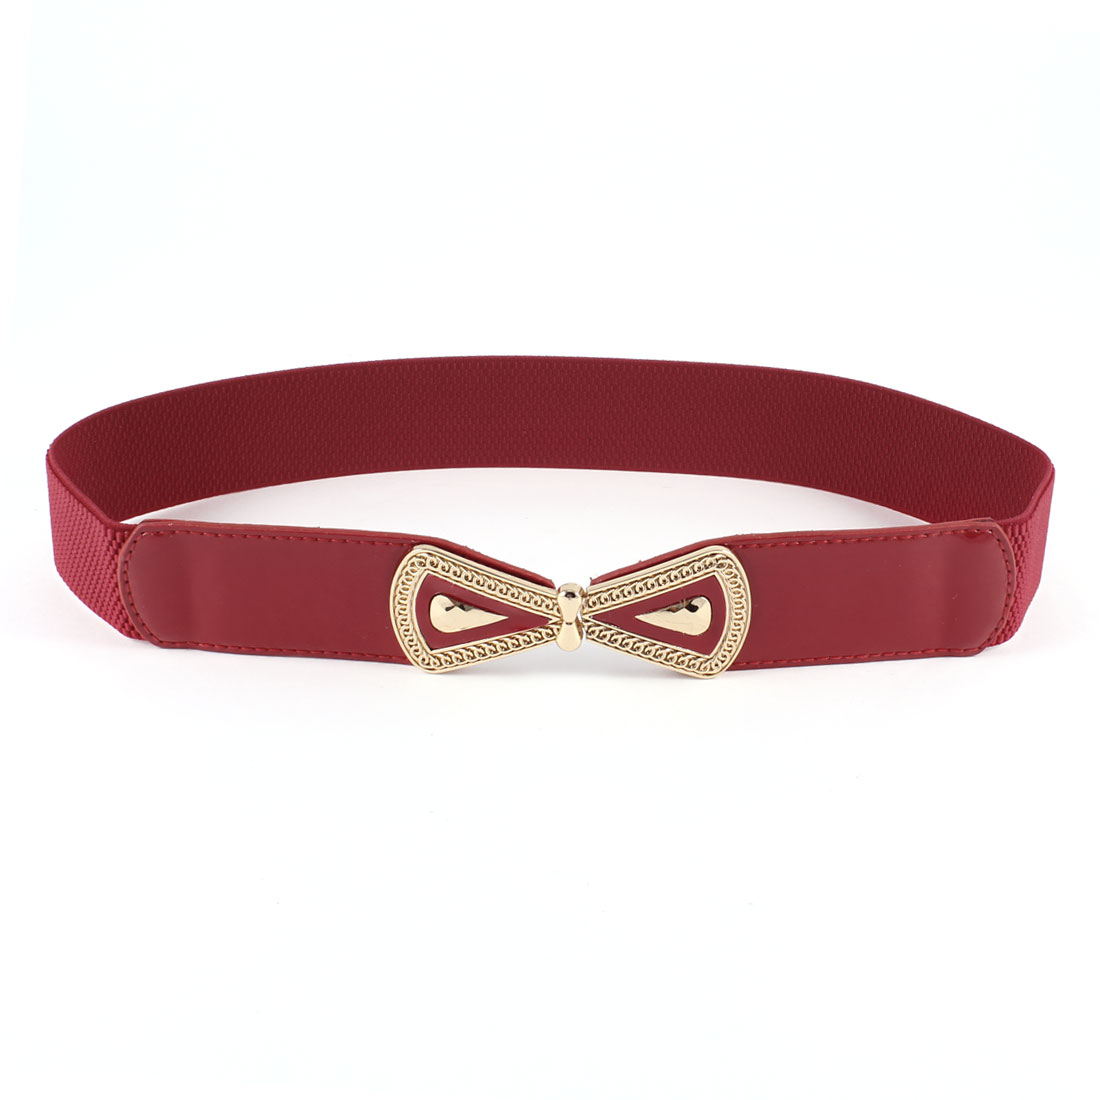 Woman Bowtie Interlocking Closure Elastic Waistband Cinch Belt Red Gold Tone